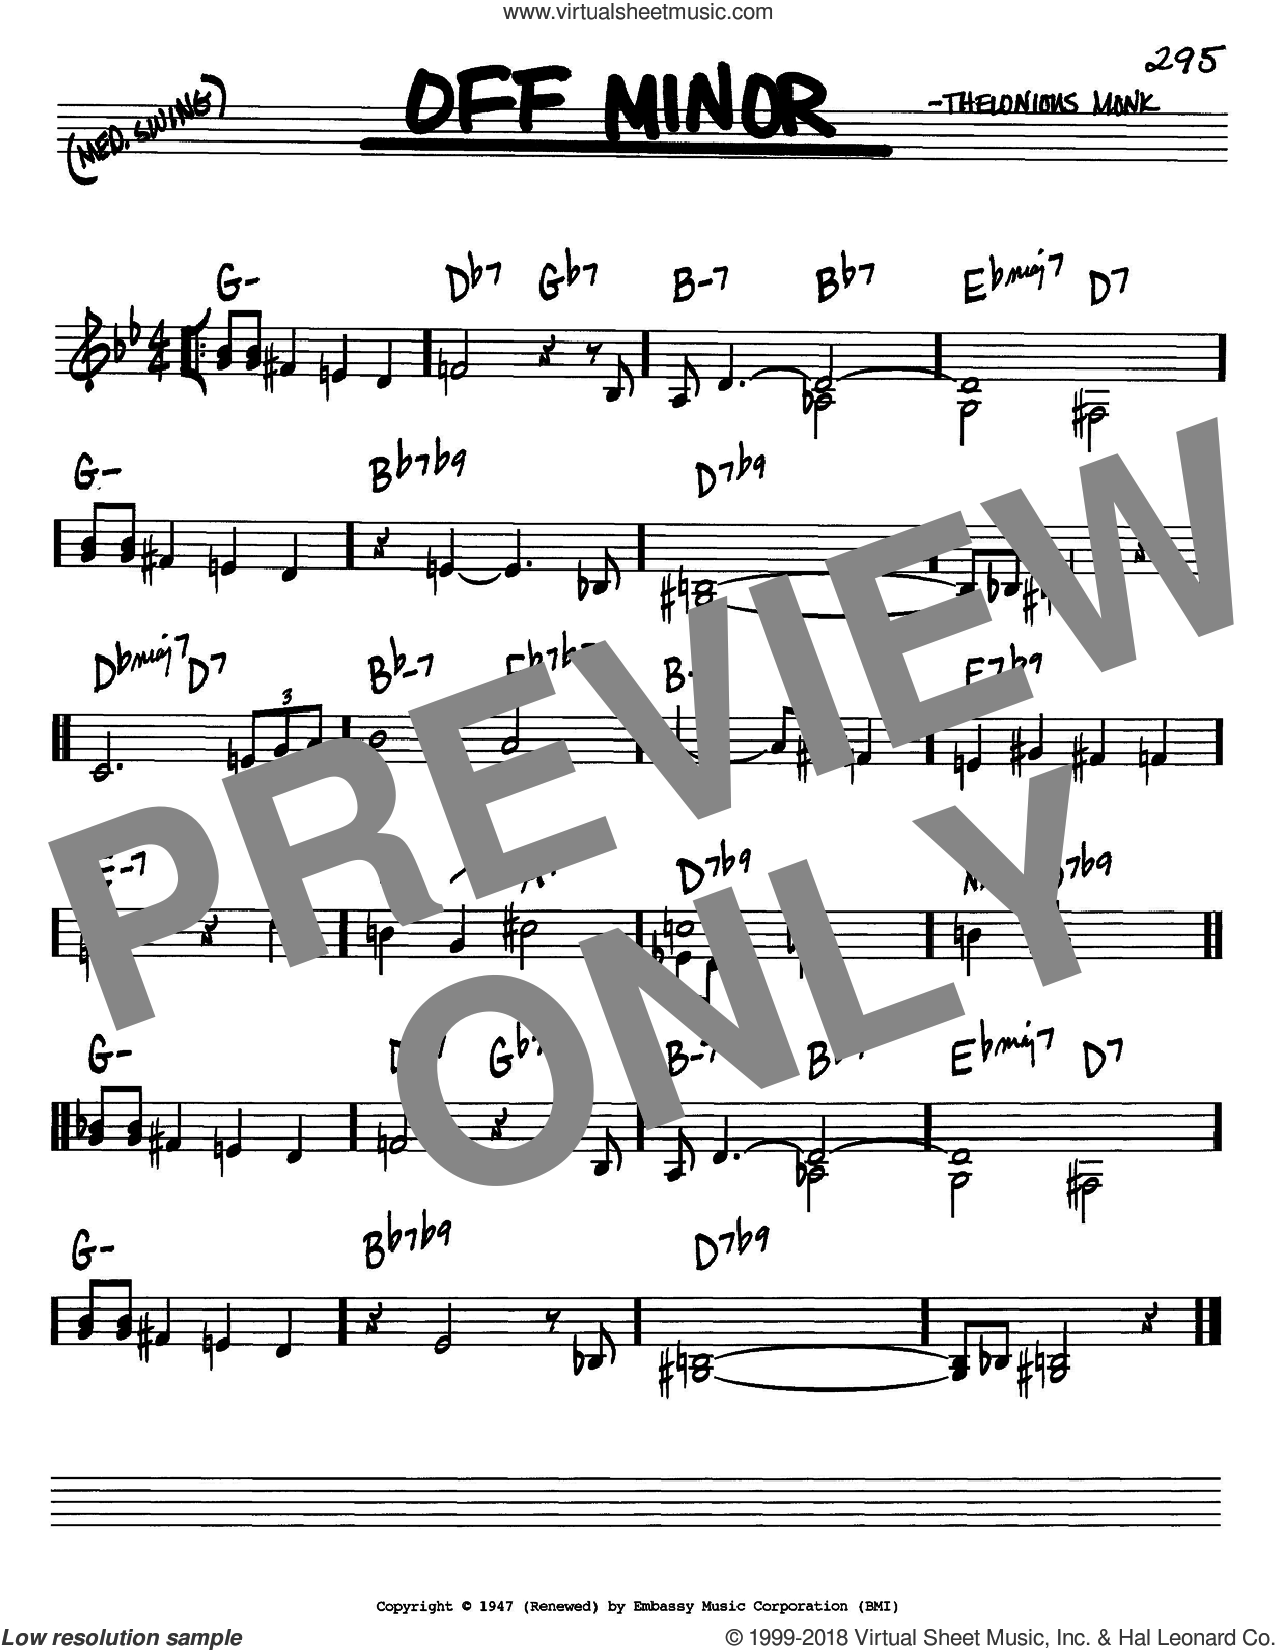 Off Minor sheet music for voice and other instruments (C) by Thelonious Monk. Score Image Preview.